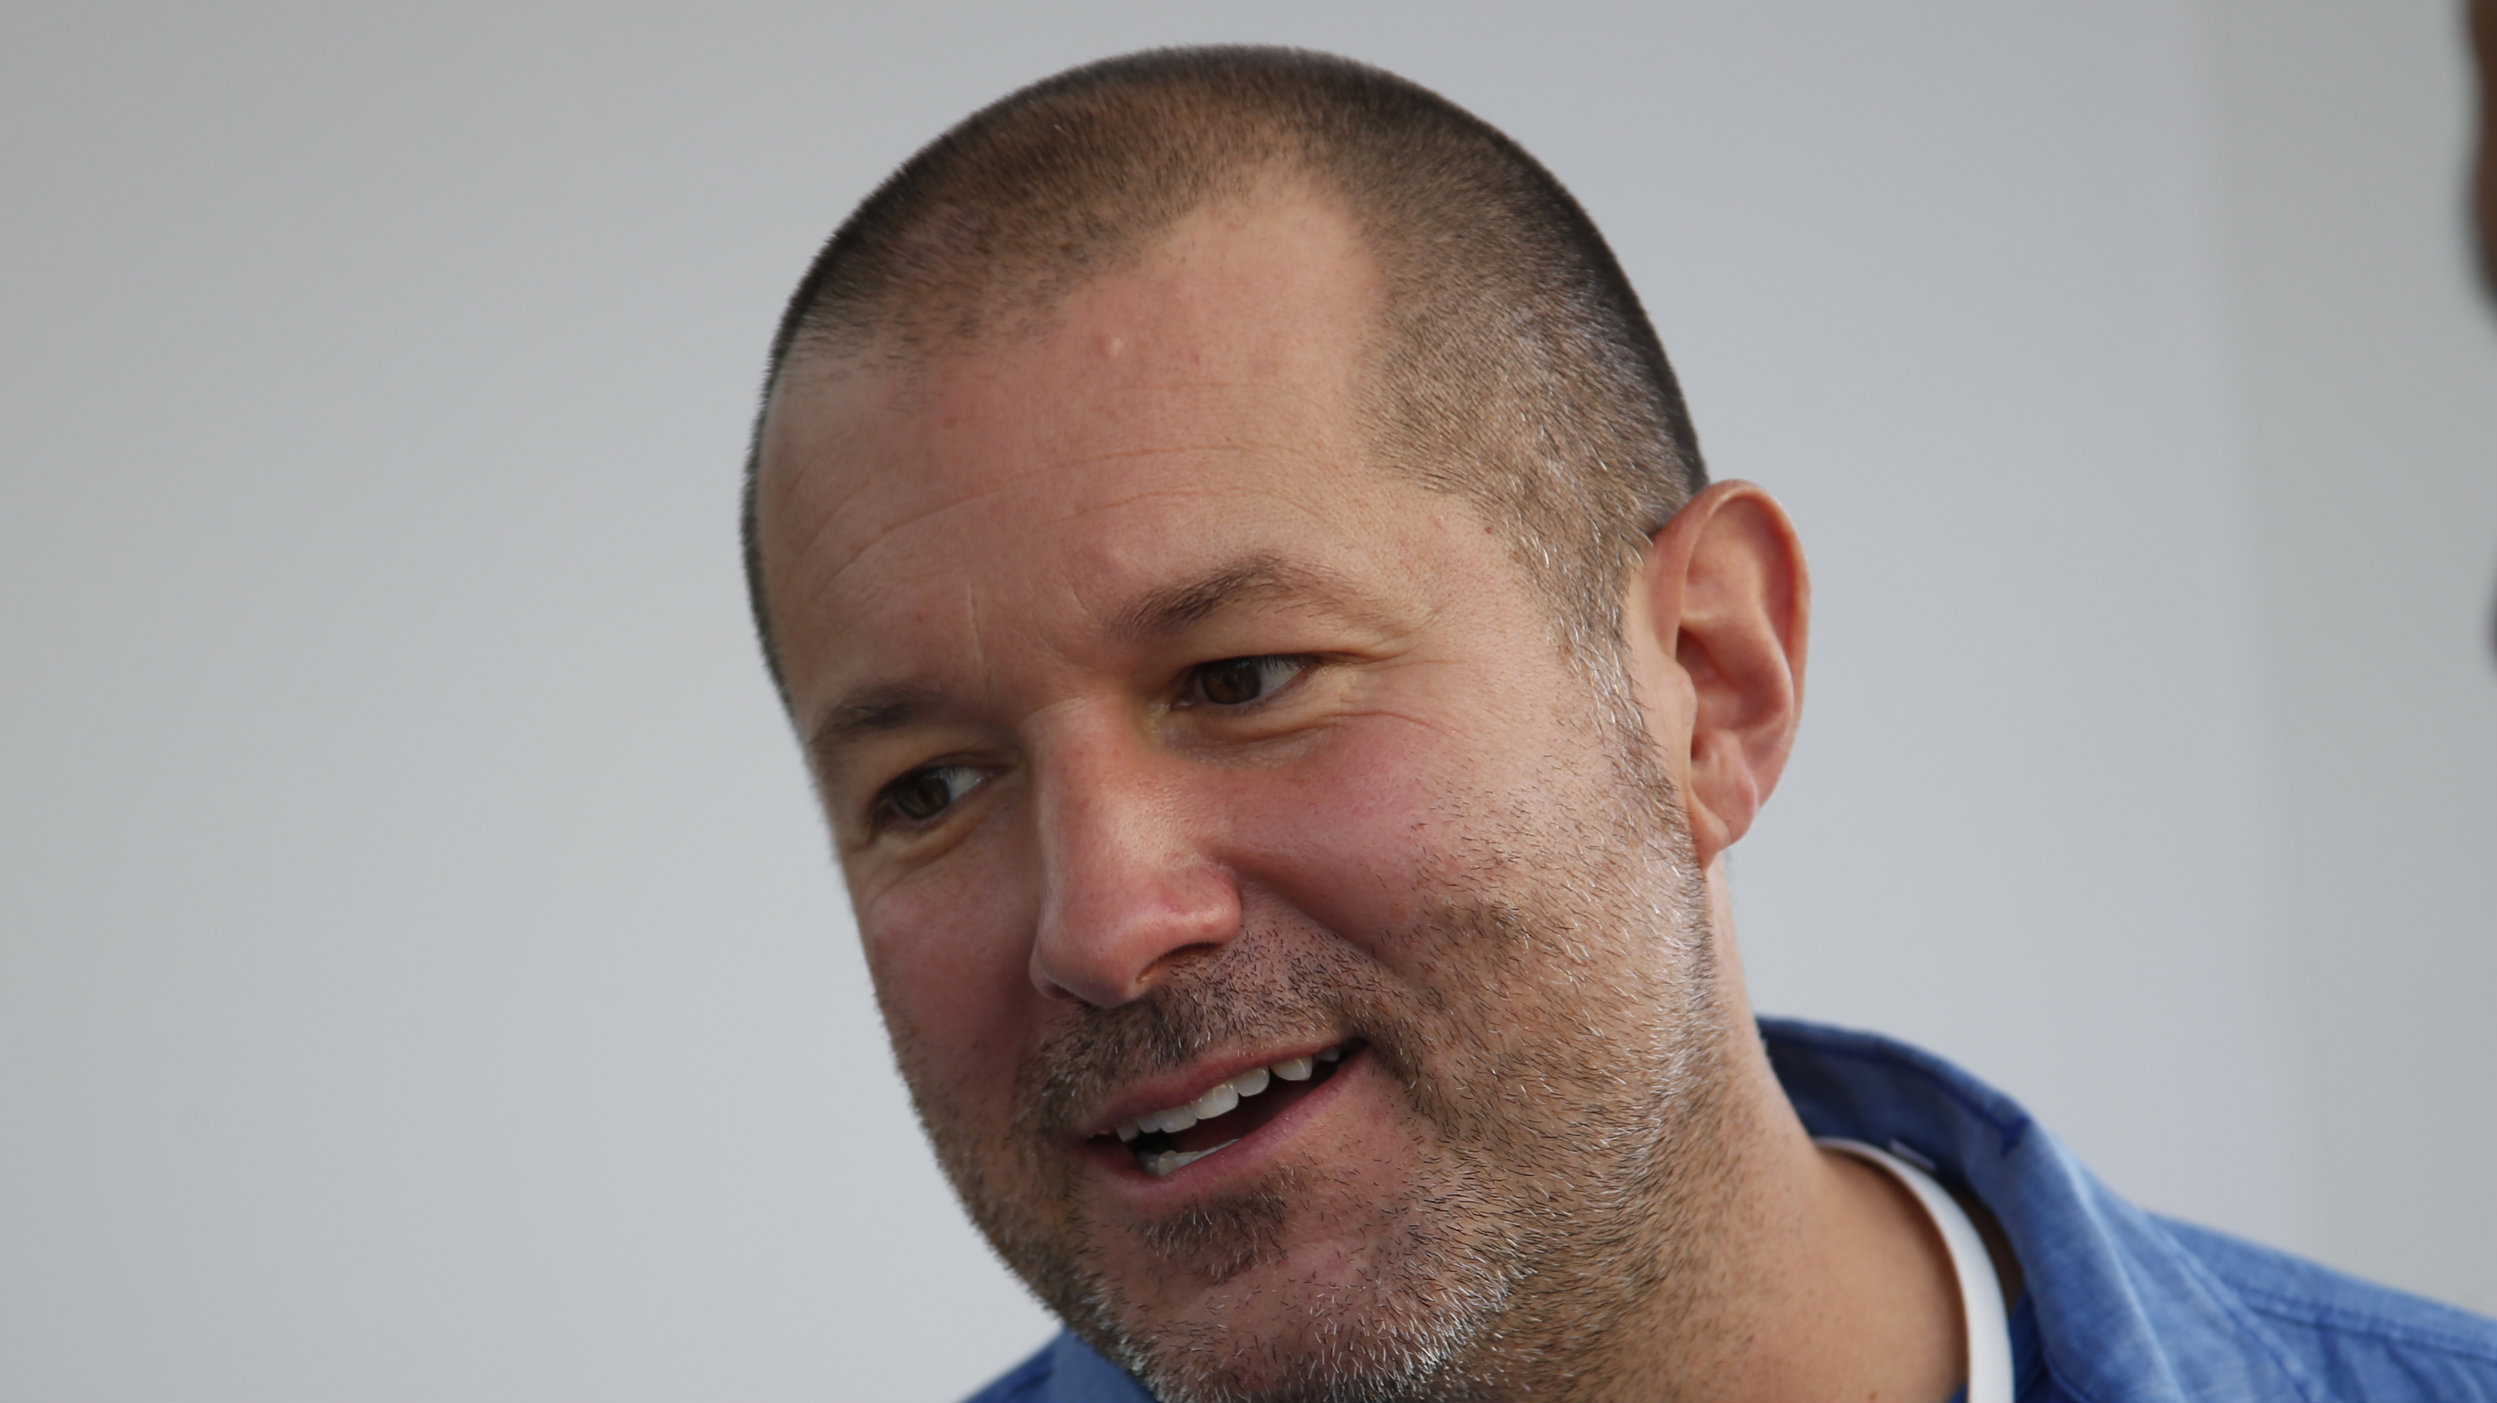 Jony Ives Copy Cat Complaints About Xiaomi Sound Eerily Familiar